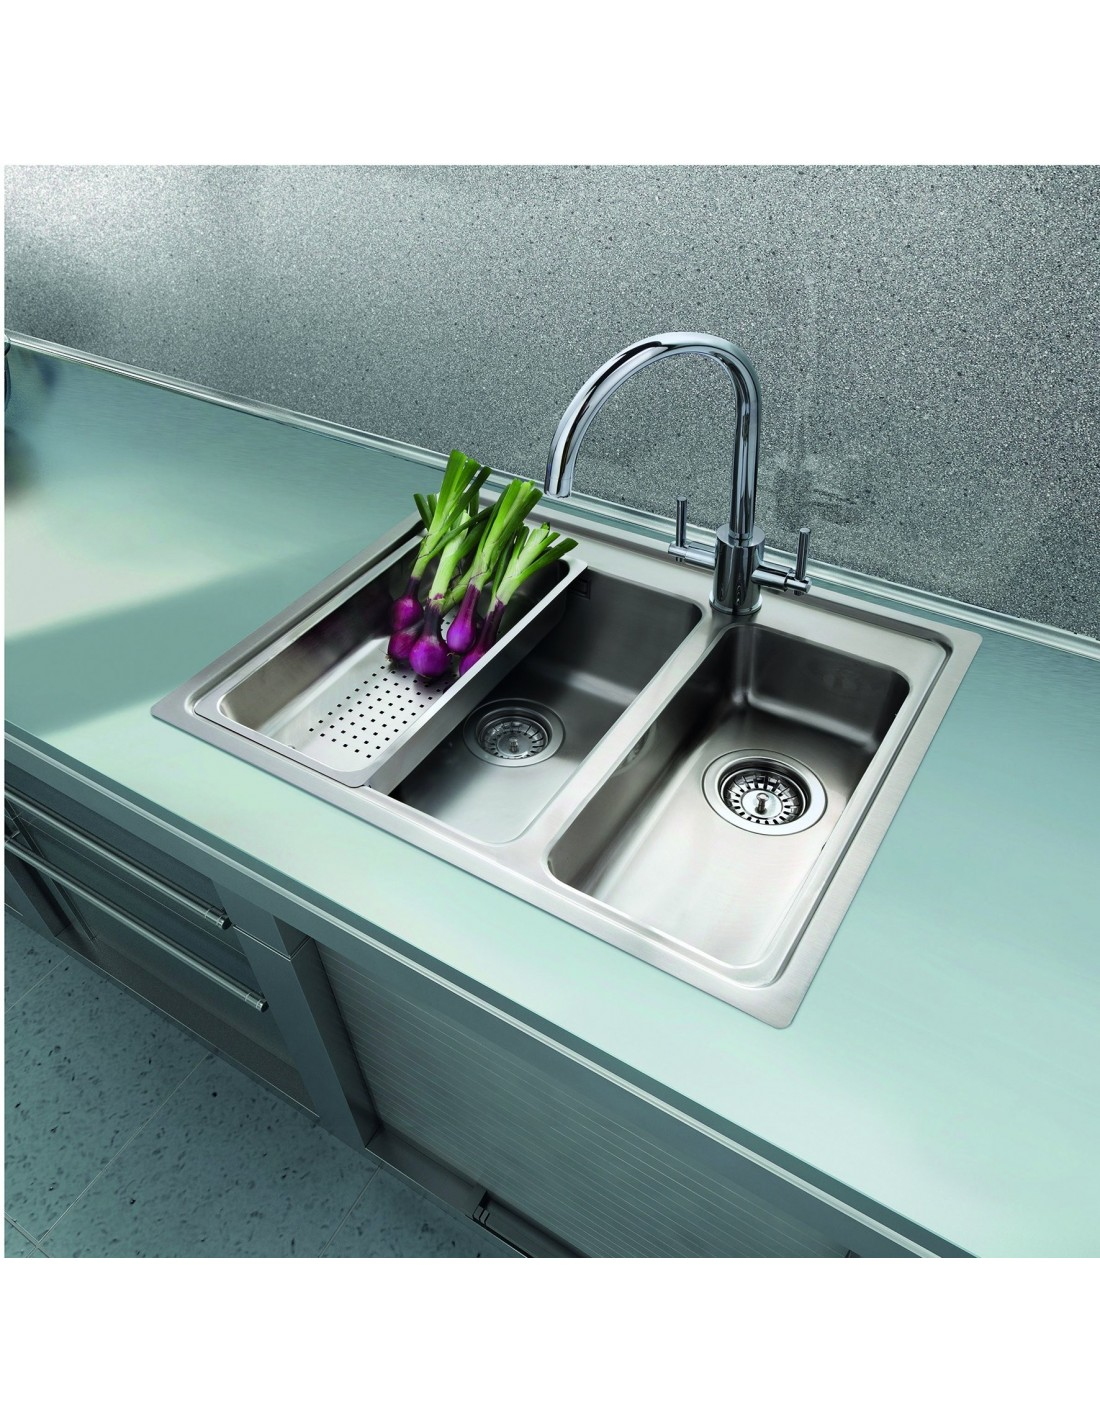 Topmount 1.5 Bowl Inset Sink With Tap Hole, Modern Square